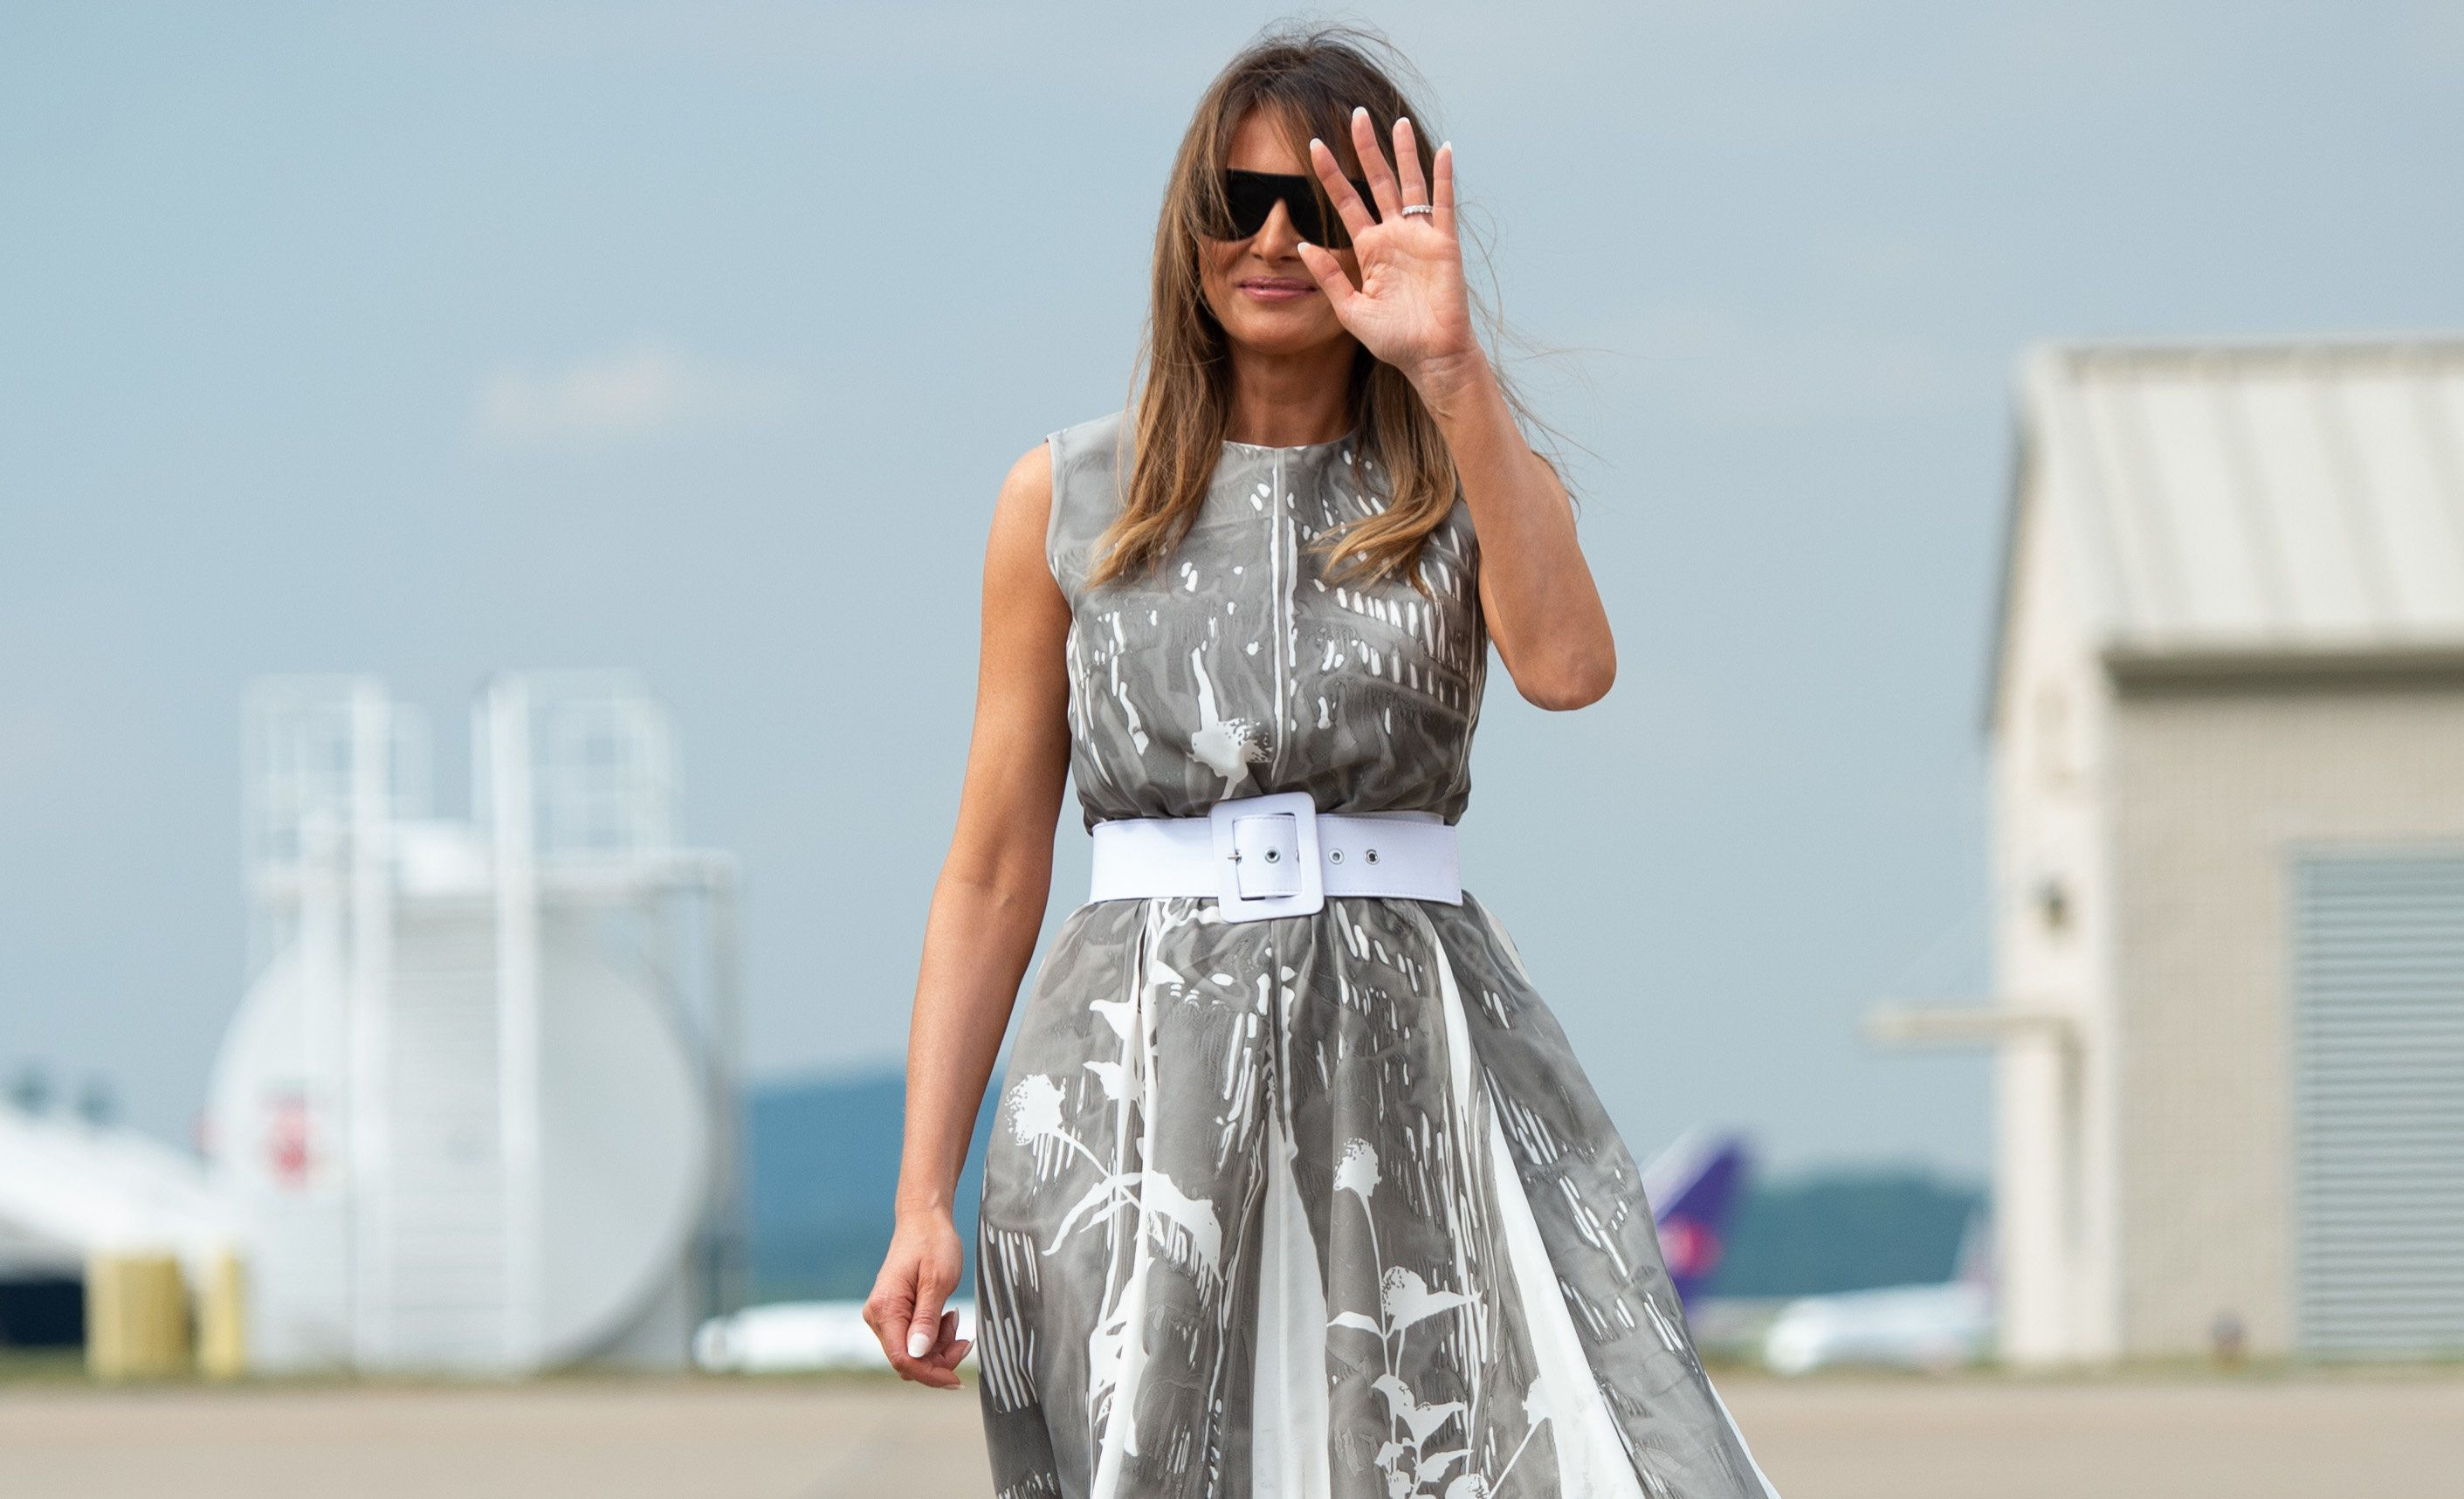 First lady Melania Trump this week, after visiting a children's hospital in Nashville as part of her Be Best initiatives.